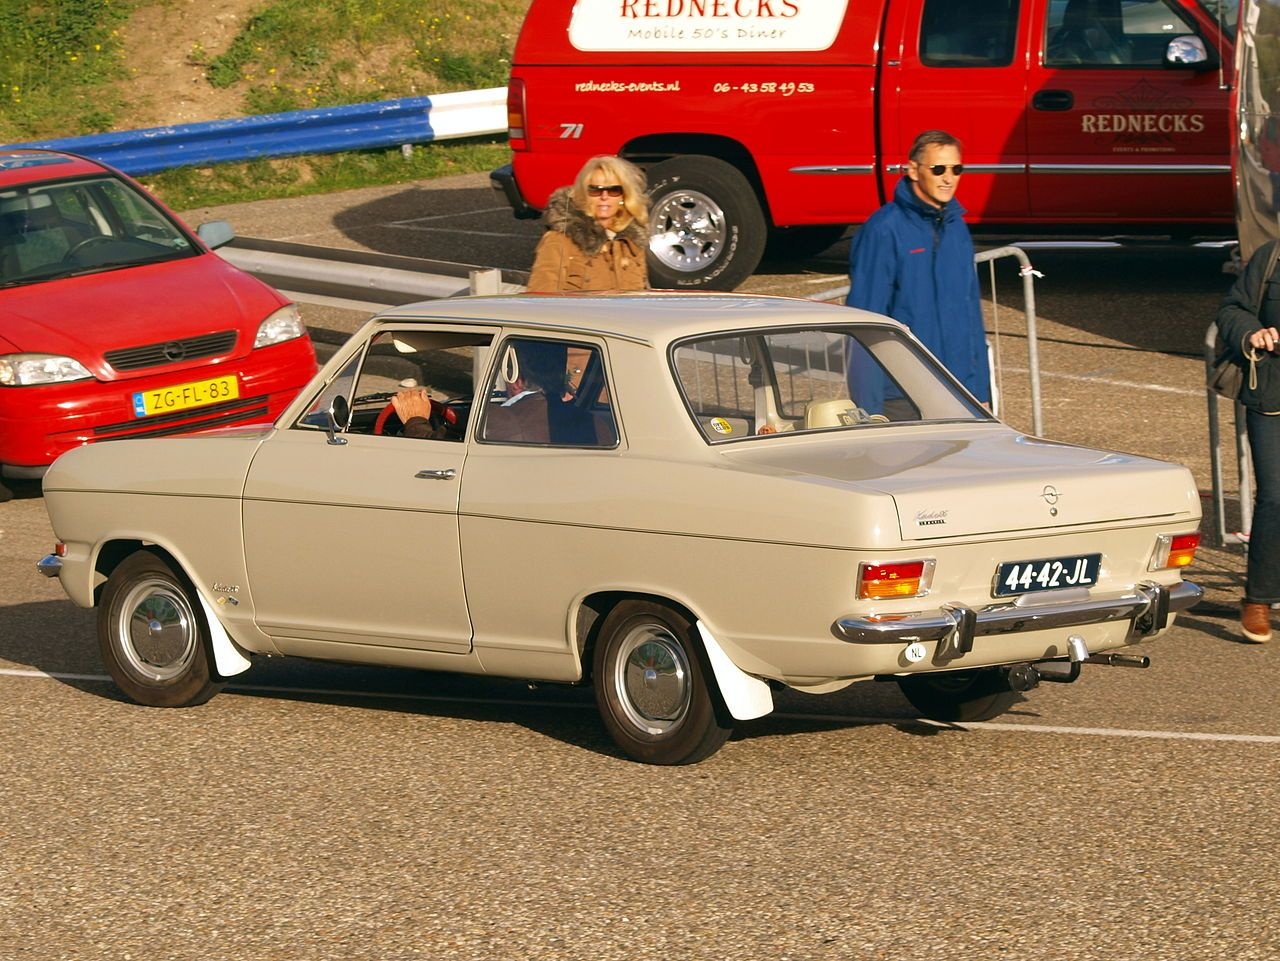 1967 opel kadett b side rear